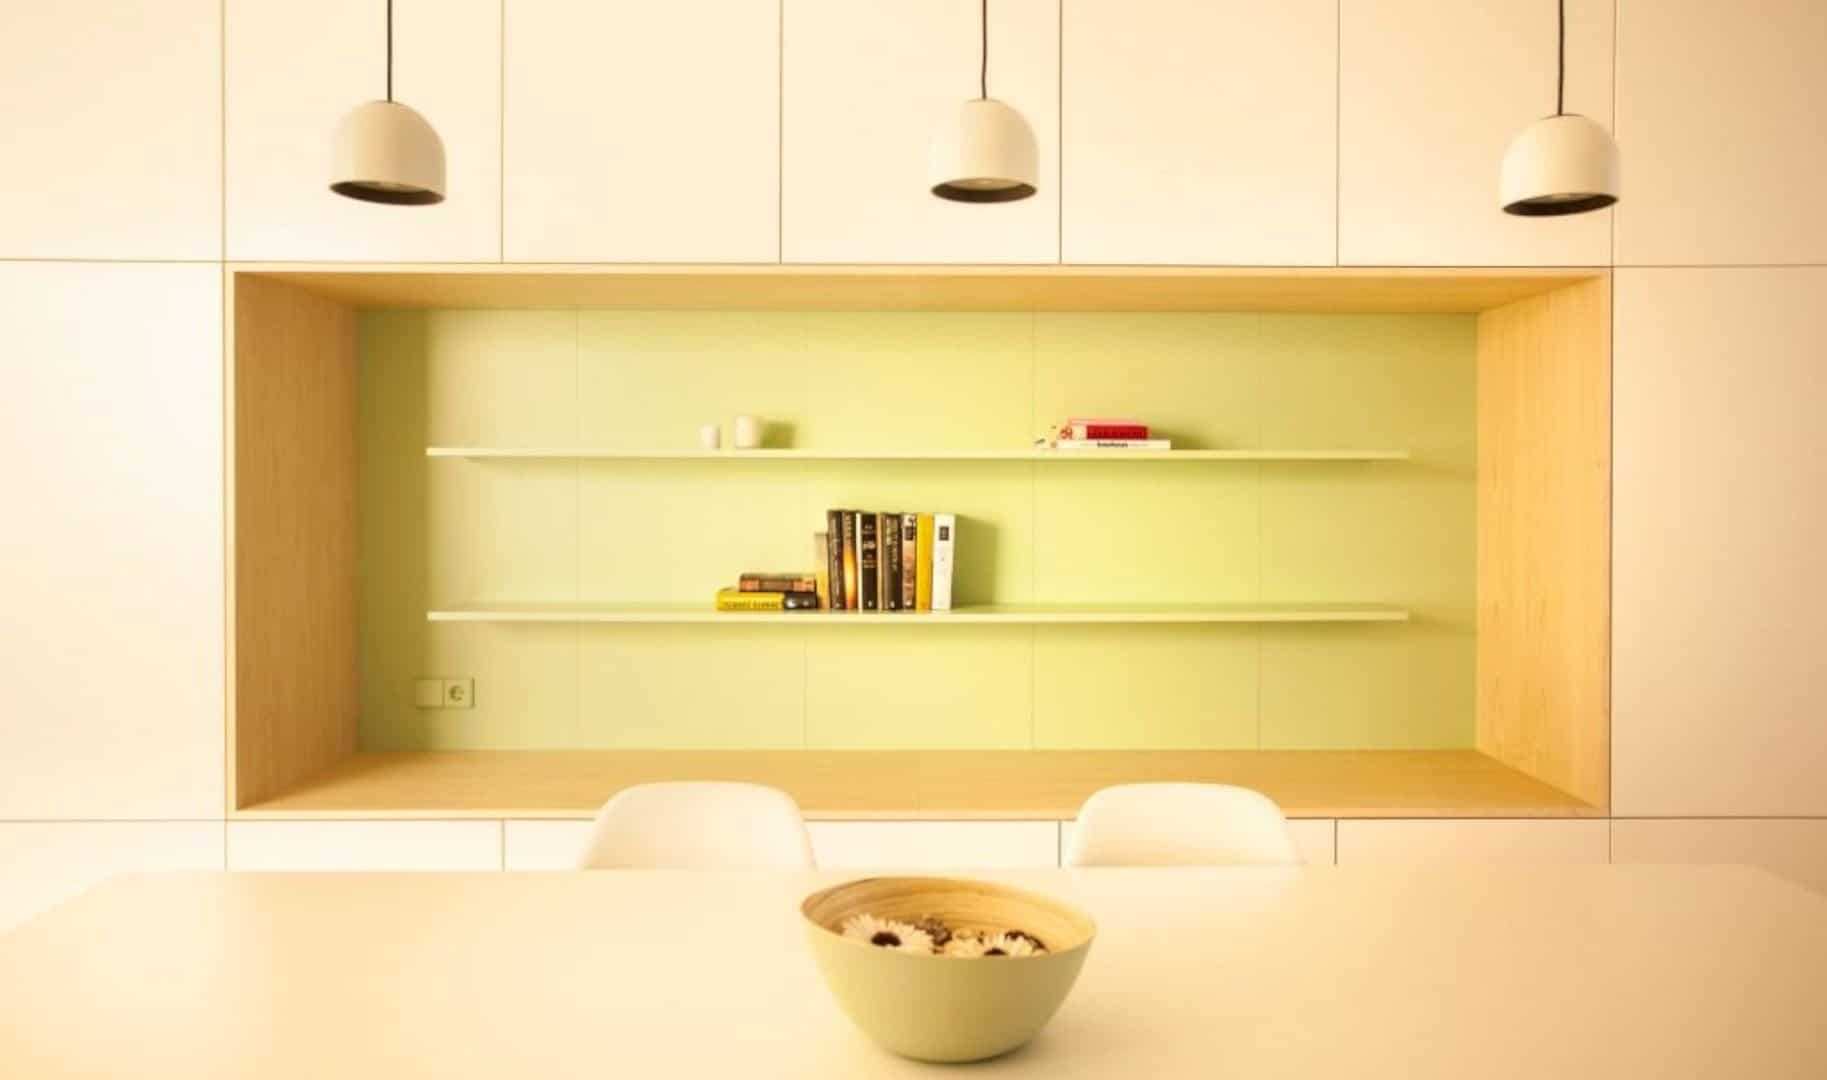 Alicante Apartment Renovation By Diego Lopez Fuster Arquitecture 5